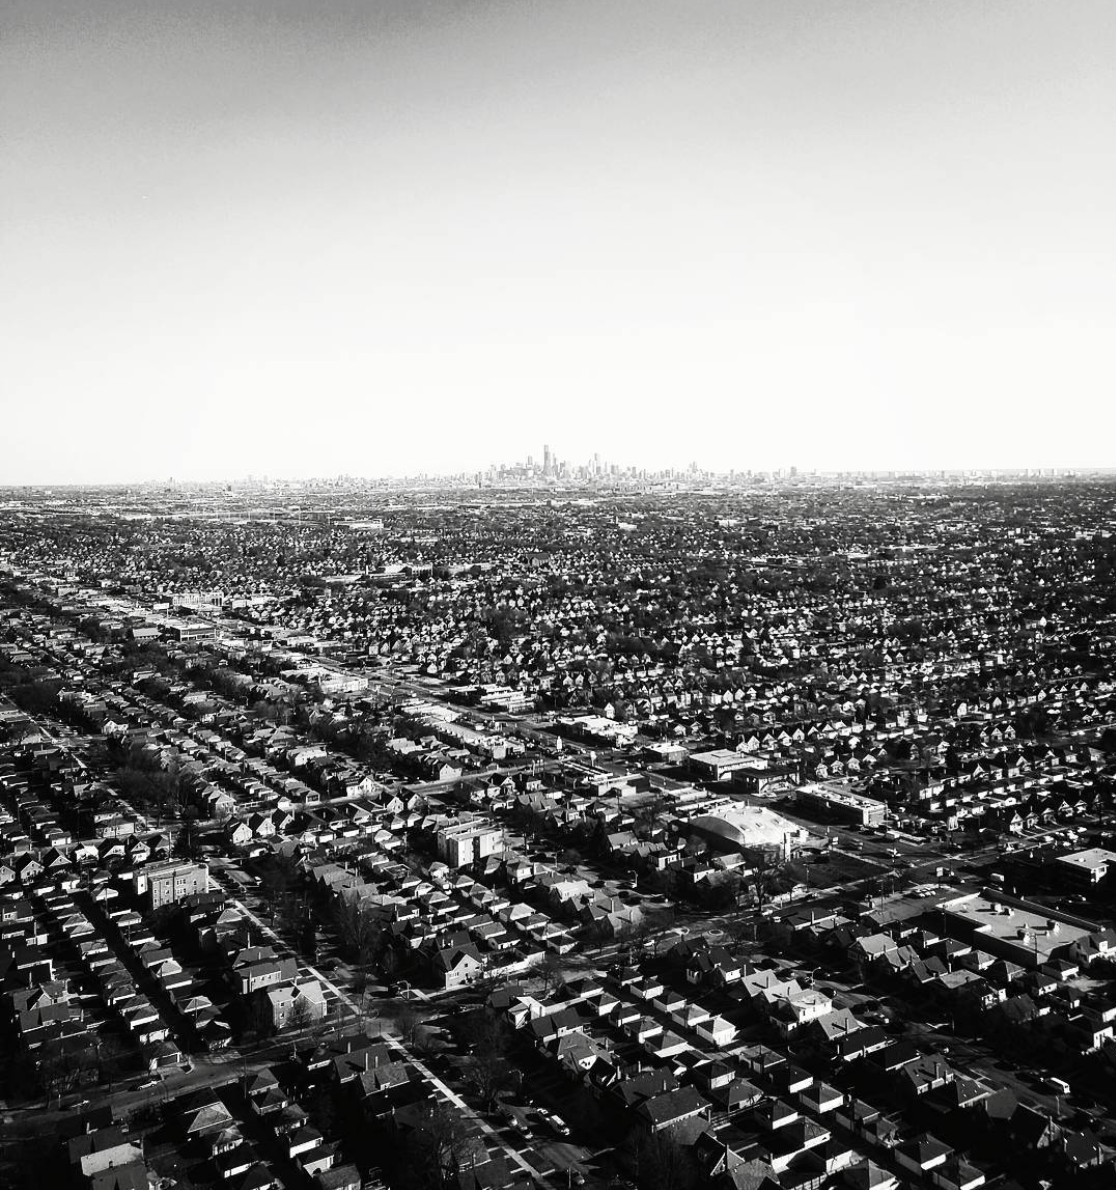 Black & White Aerial Photo of Chicago on Business Travel